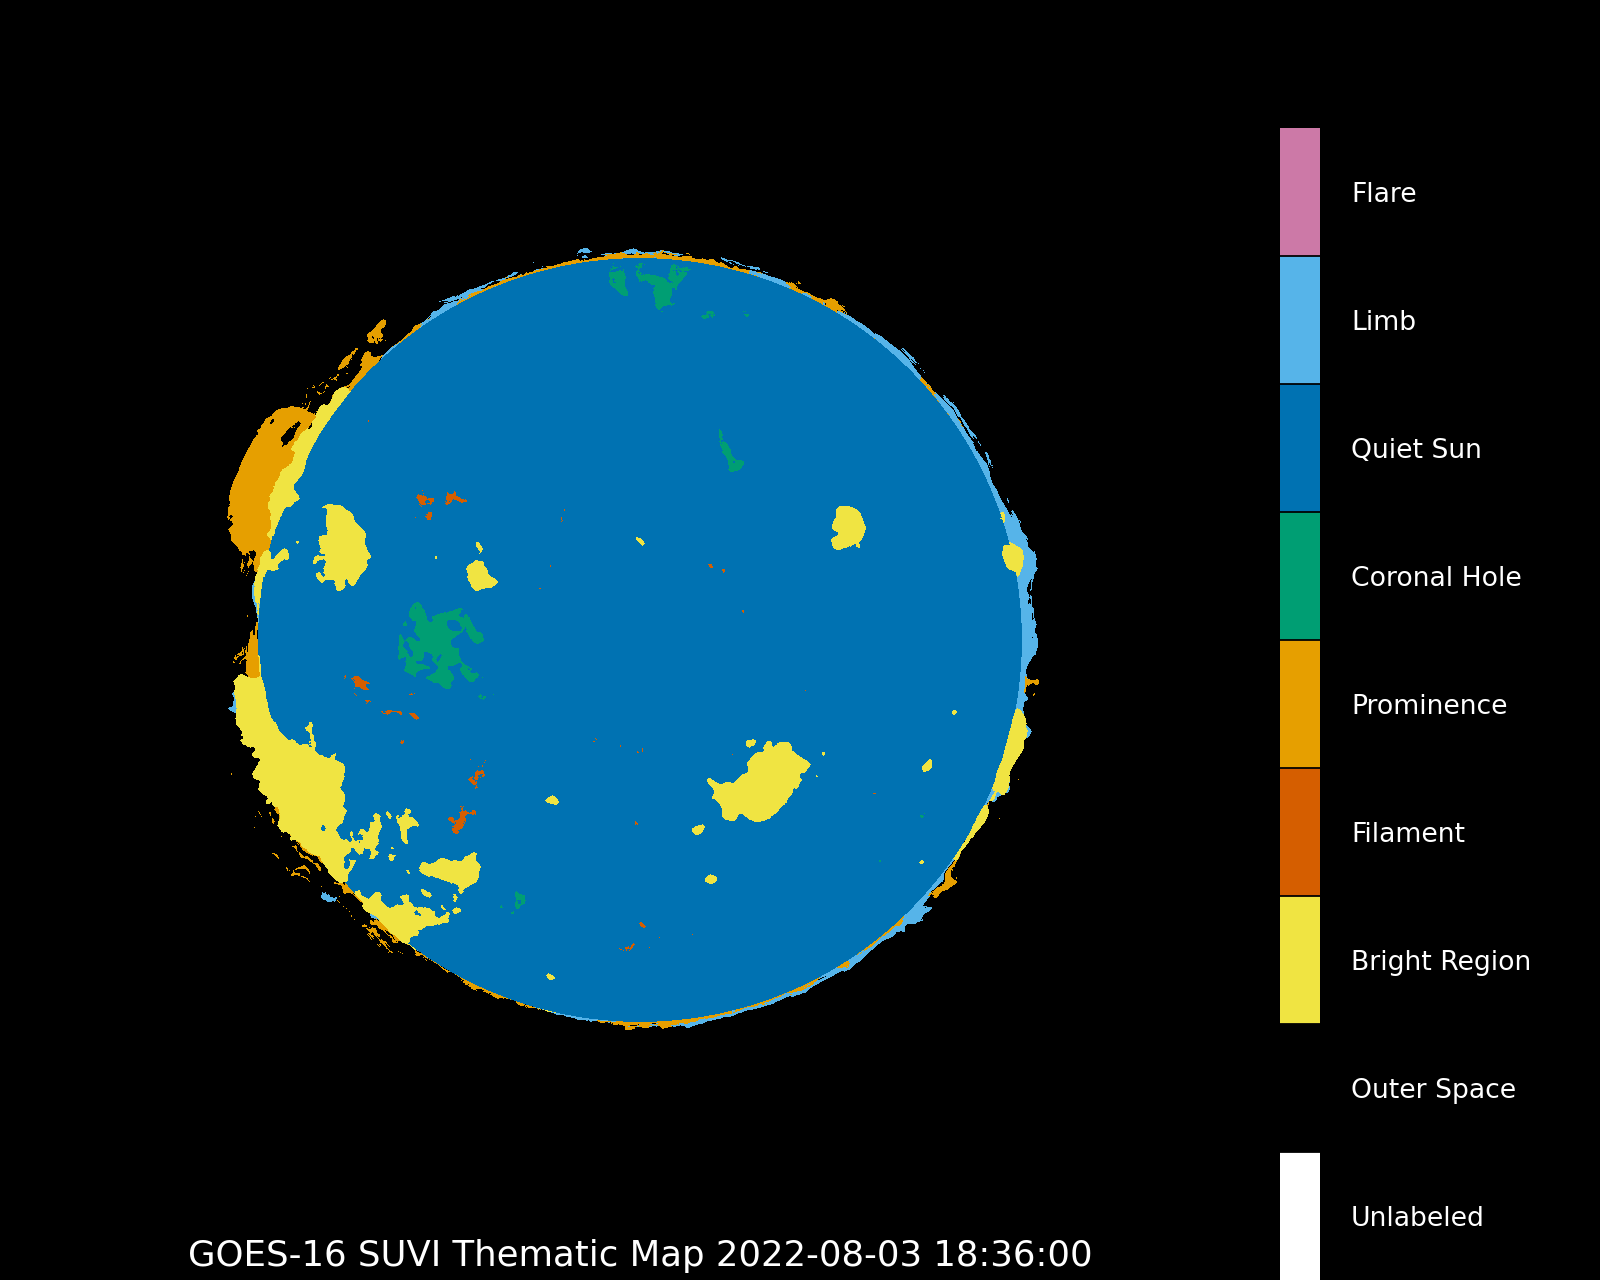 GOES-16 Thermatic map